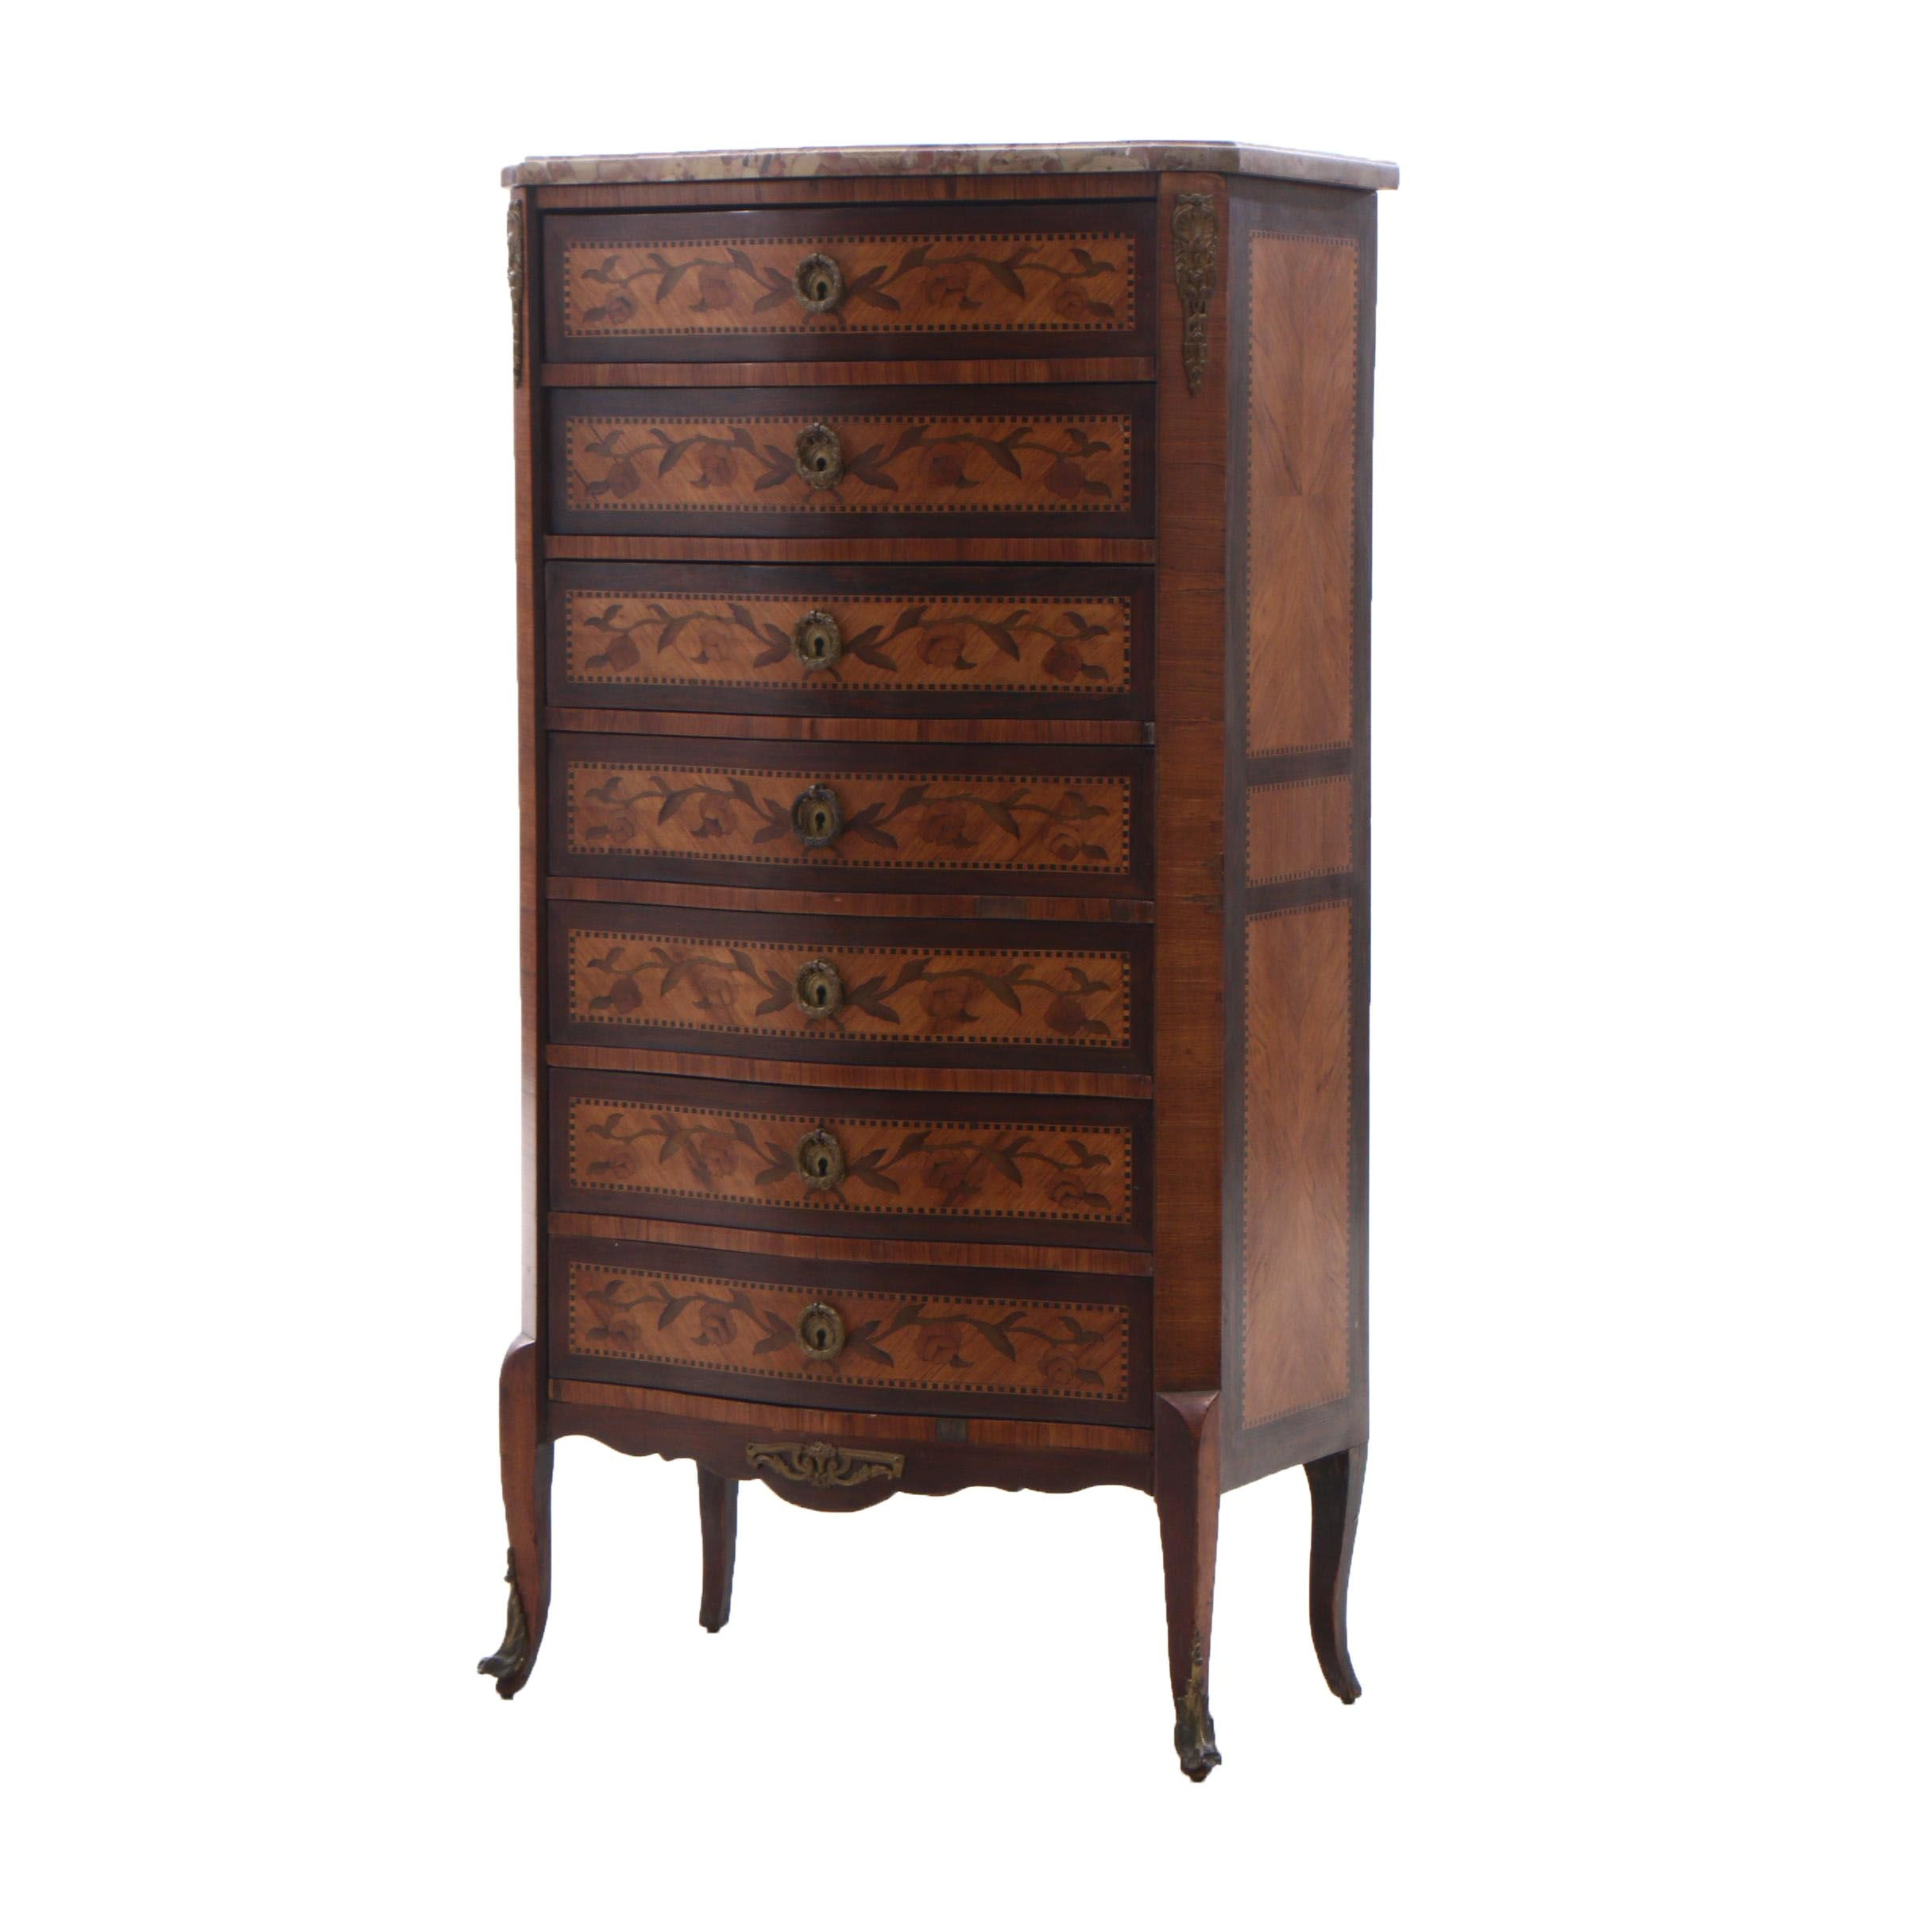 Louis XV Style Inlaid Lingerie Chest